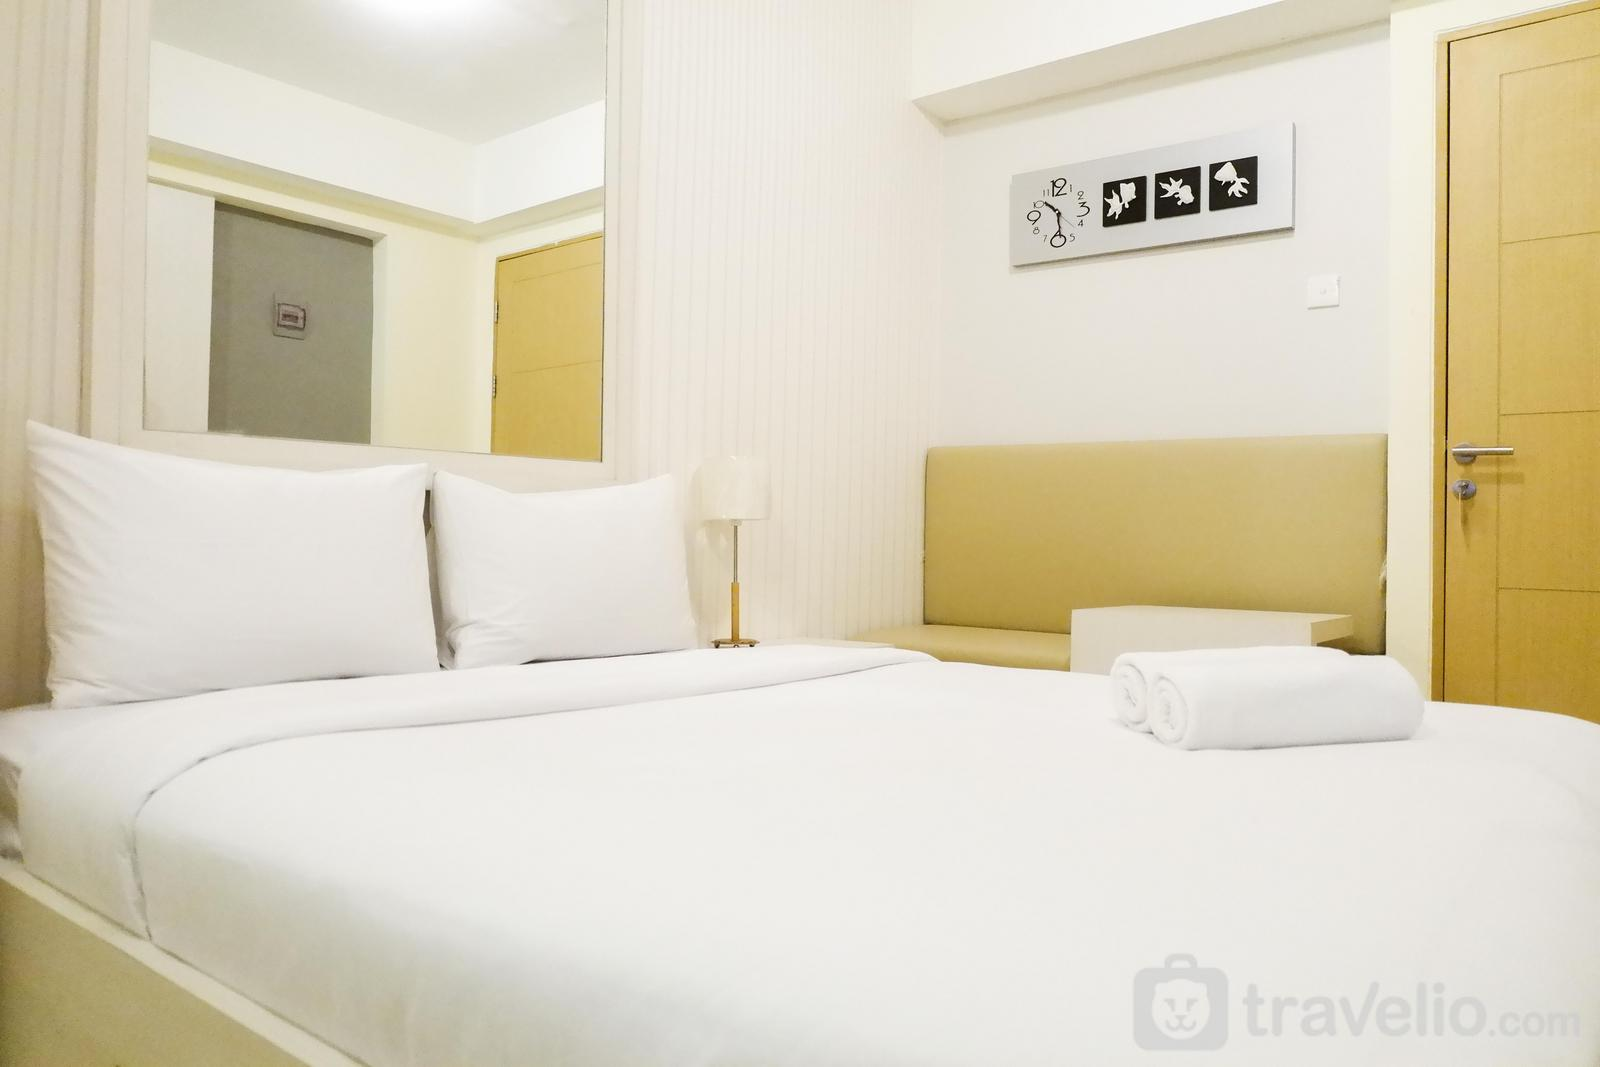 Educity Pakuwon - Cozy Studio Apartment at Educity Pakuwon By Travelio